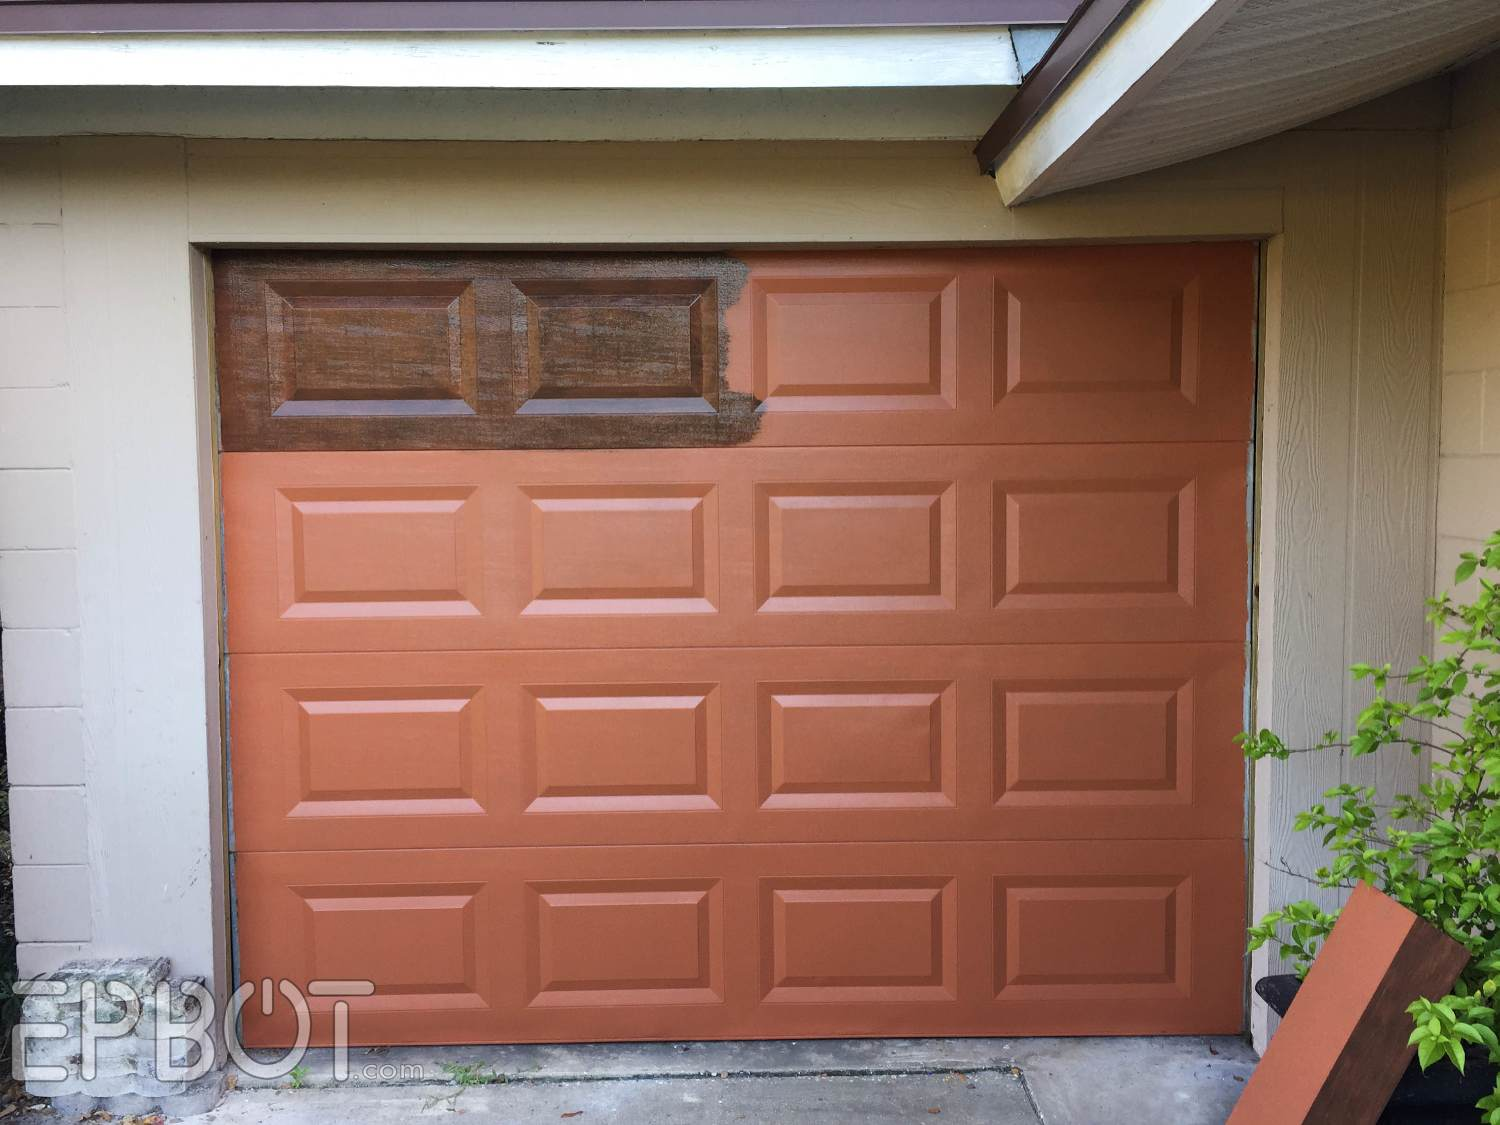 For the first coat of glaze John did a horizontal strié meaning he dragged the brush sideways only. & EPBOT: We Faux-Painted Our Garage Door!